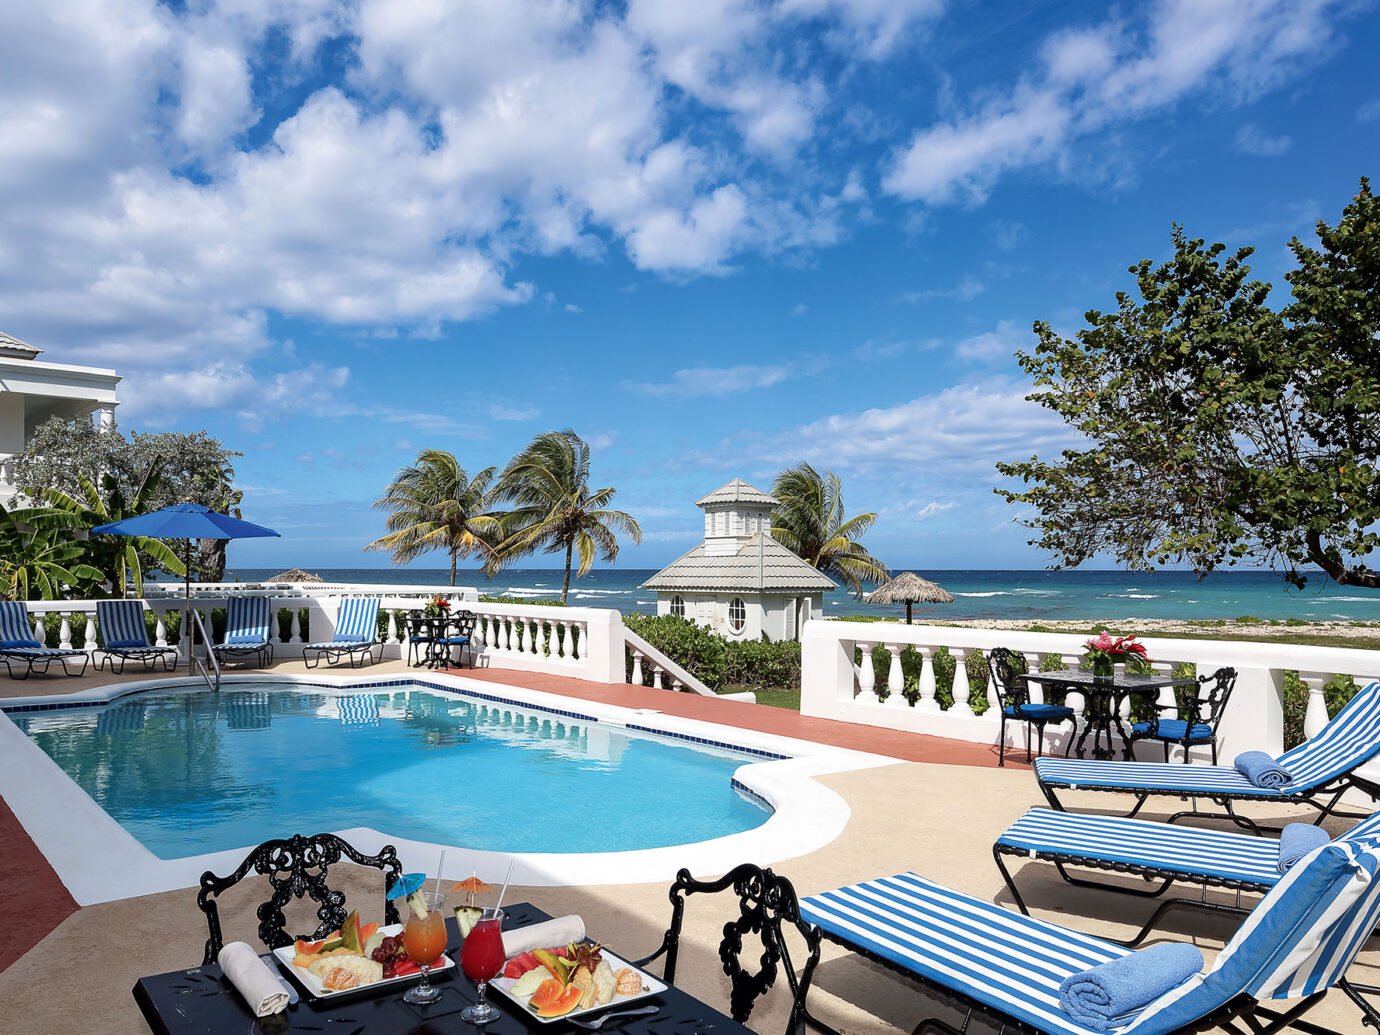 Pool of a villa at Half Moon, Montego Bay, Jamaica